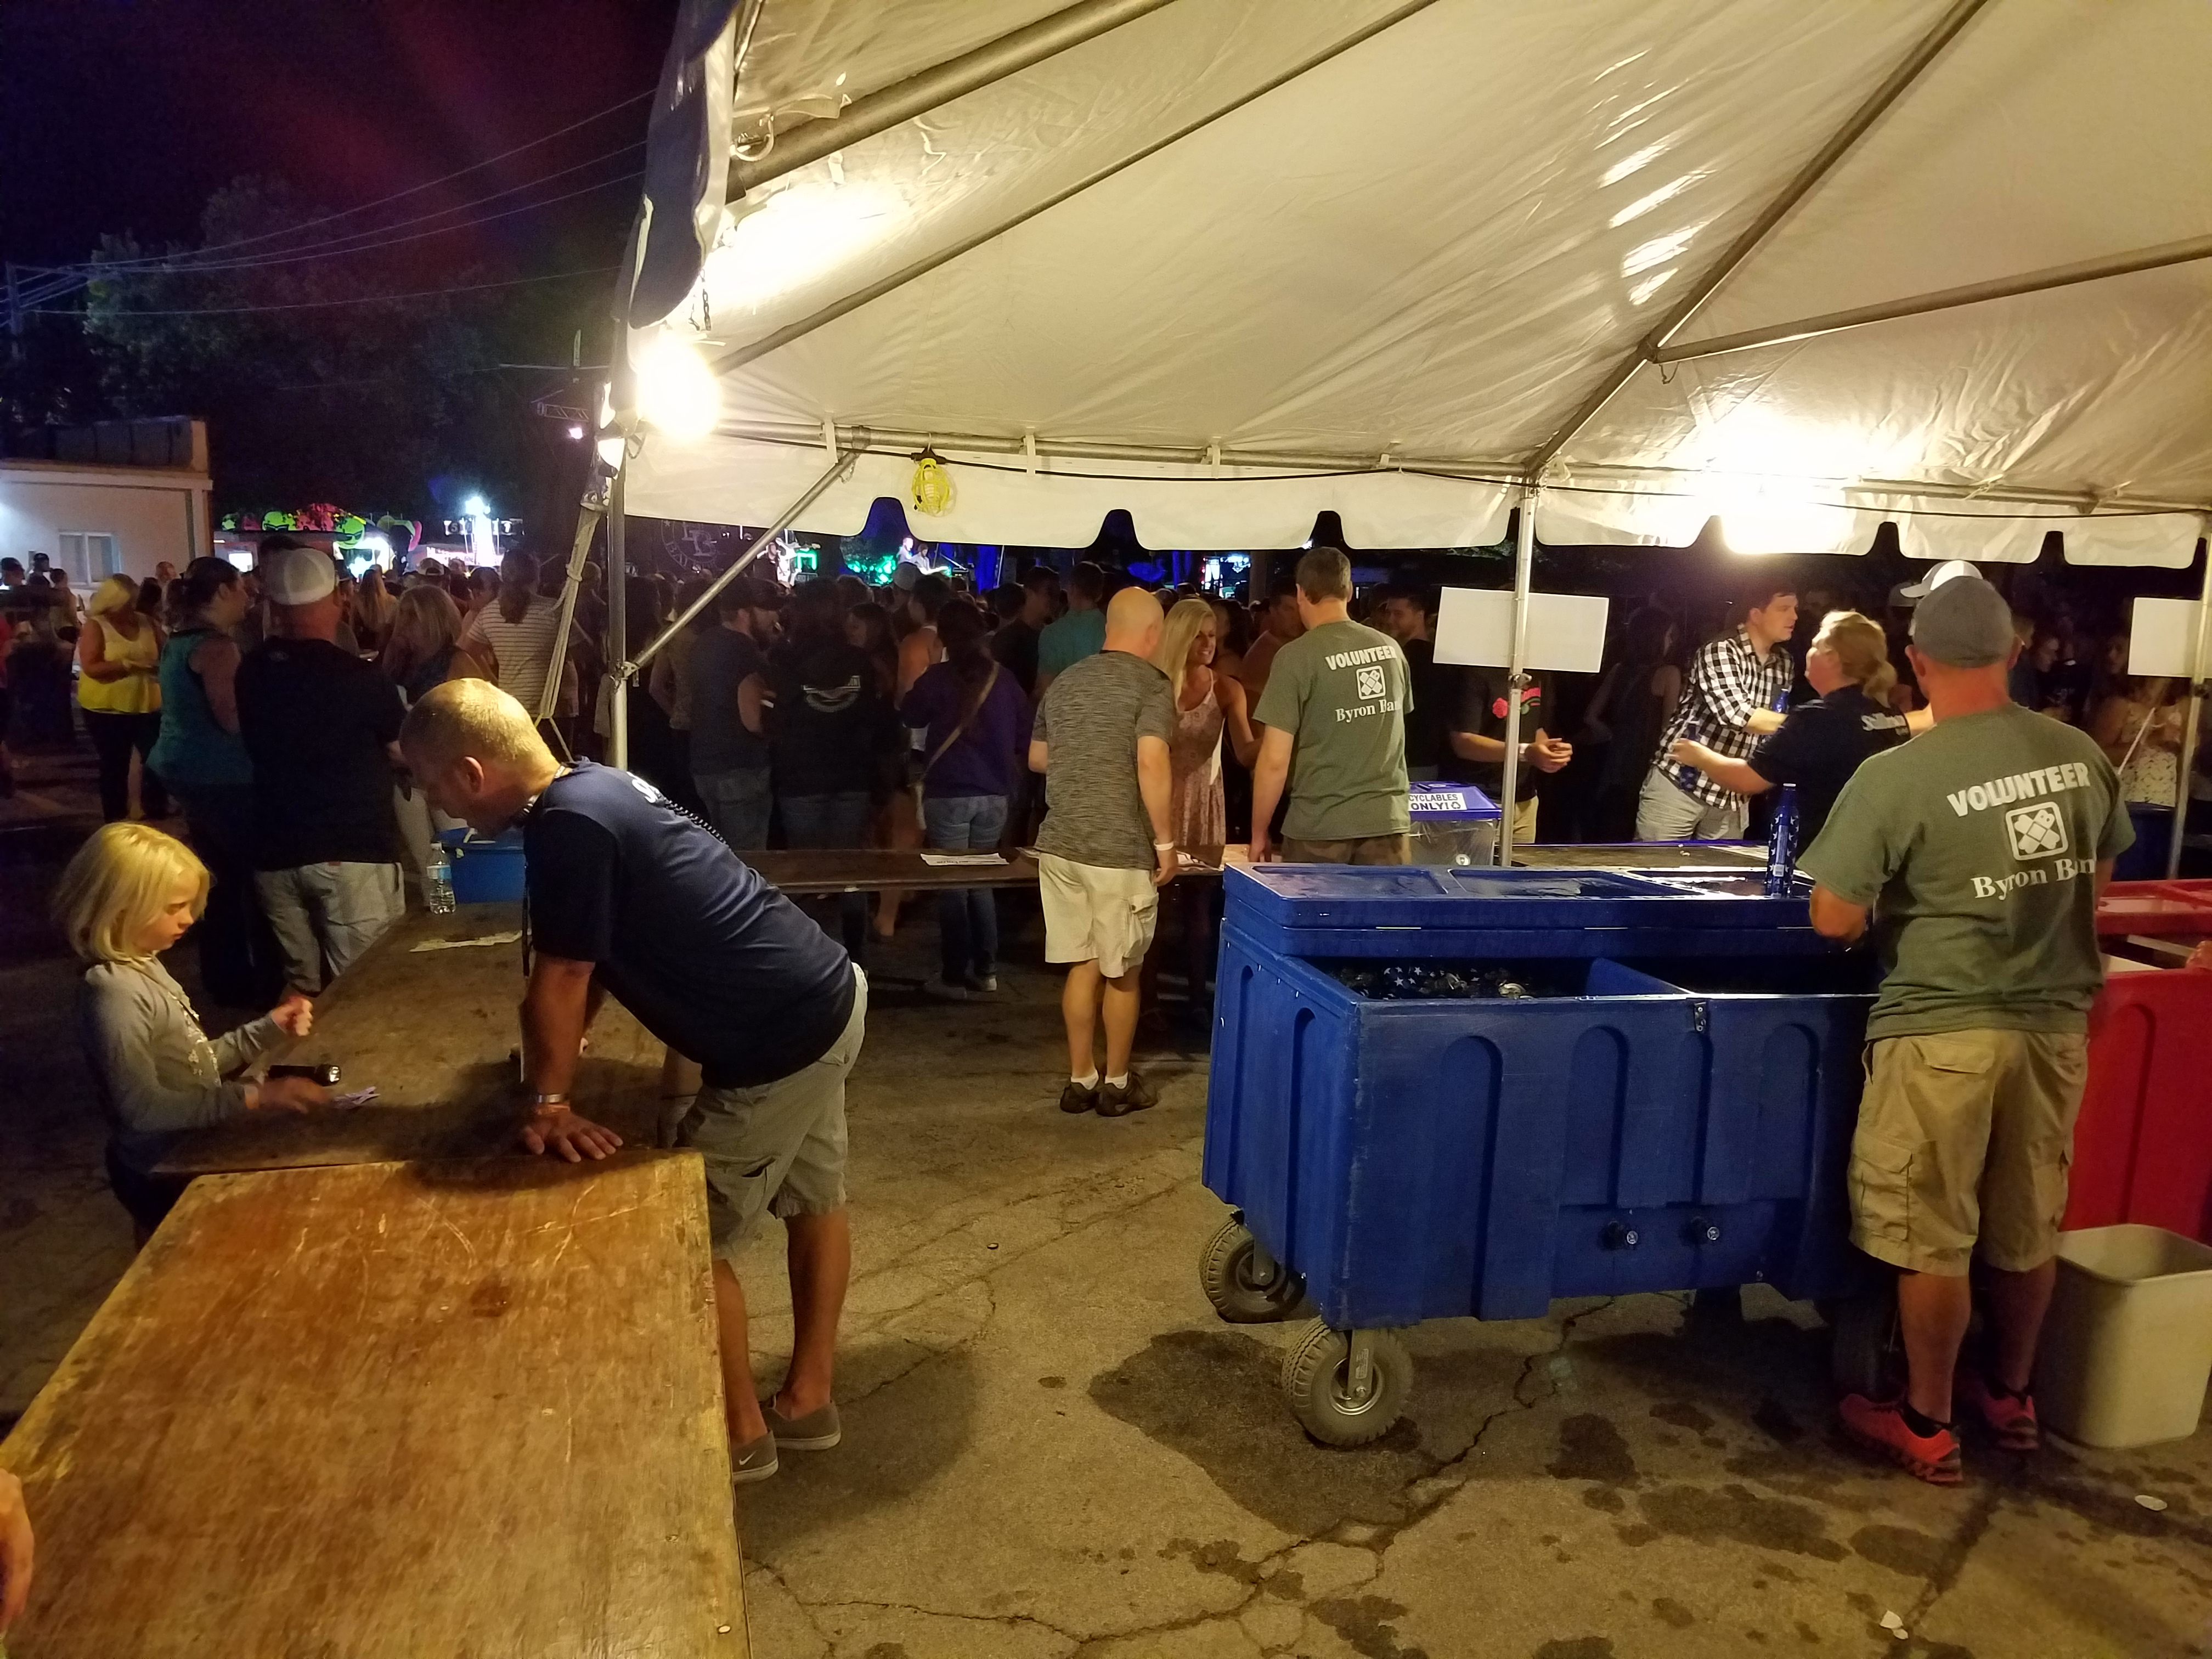 Chamber of Commerce beer tent.